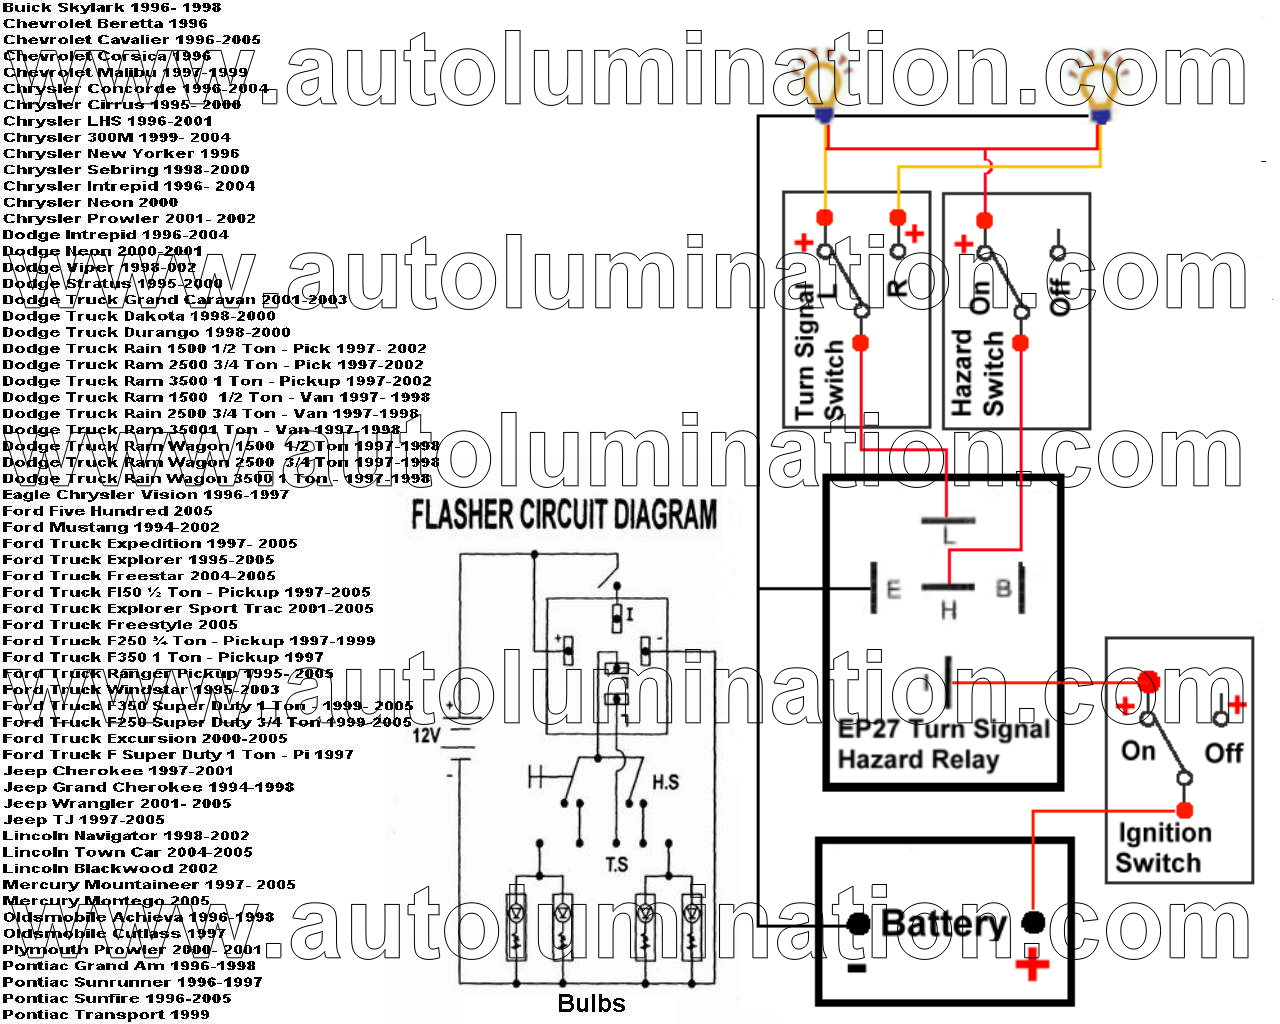 2 prong flasher wiring diagram free download  u2022 oasis